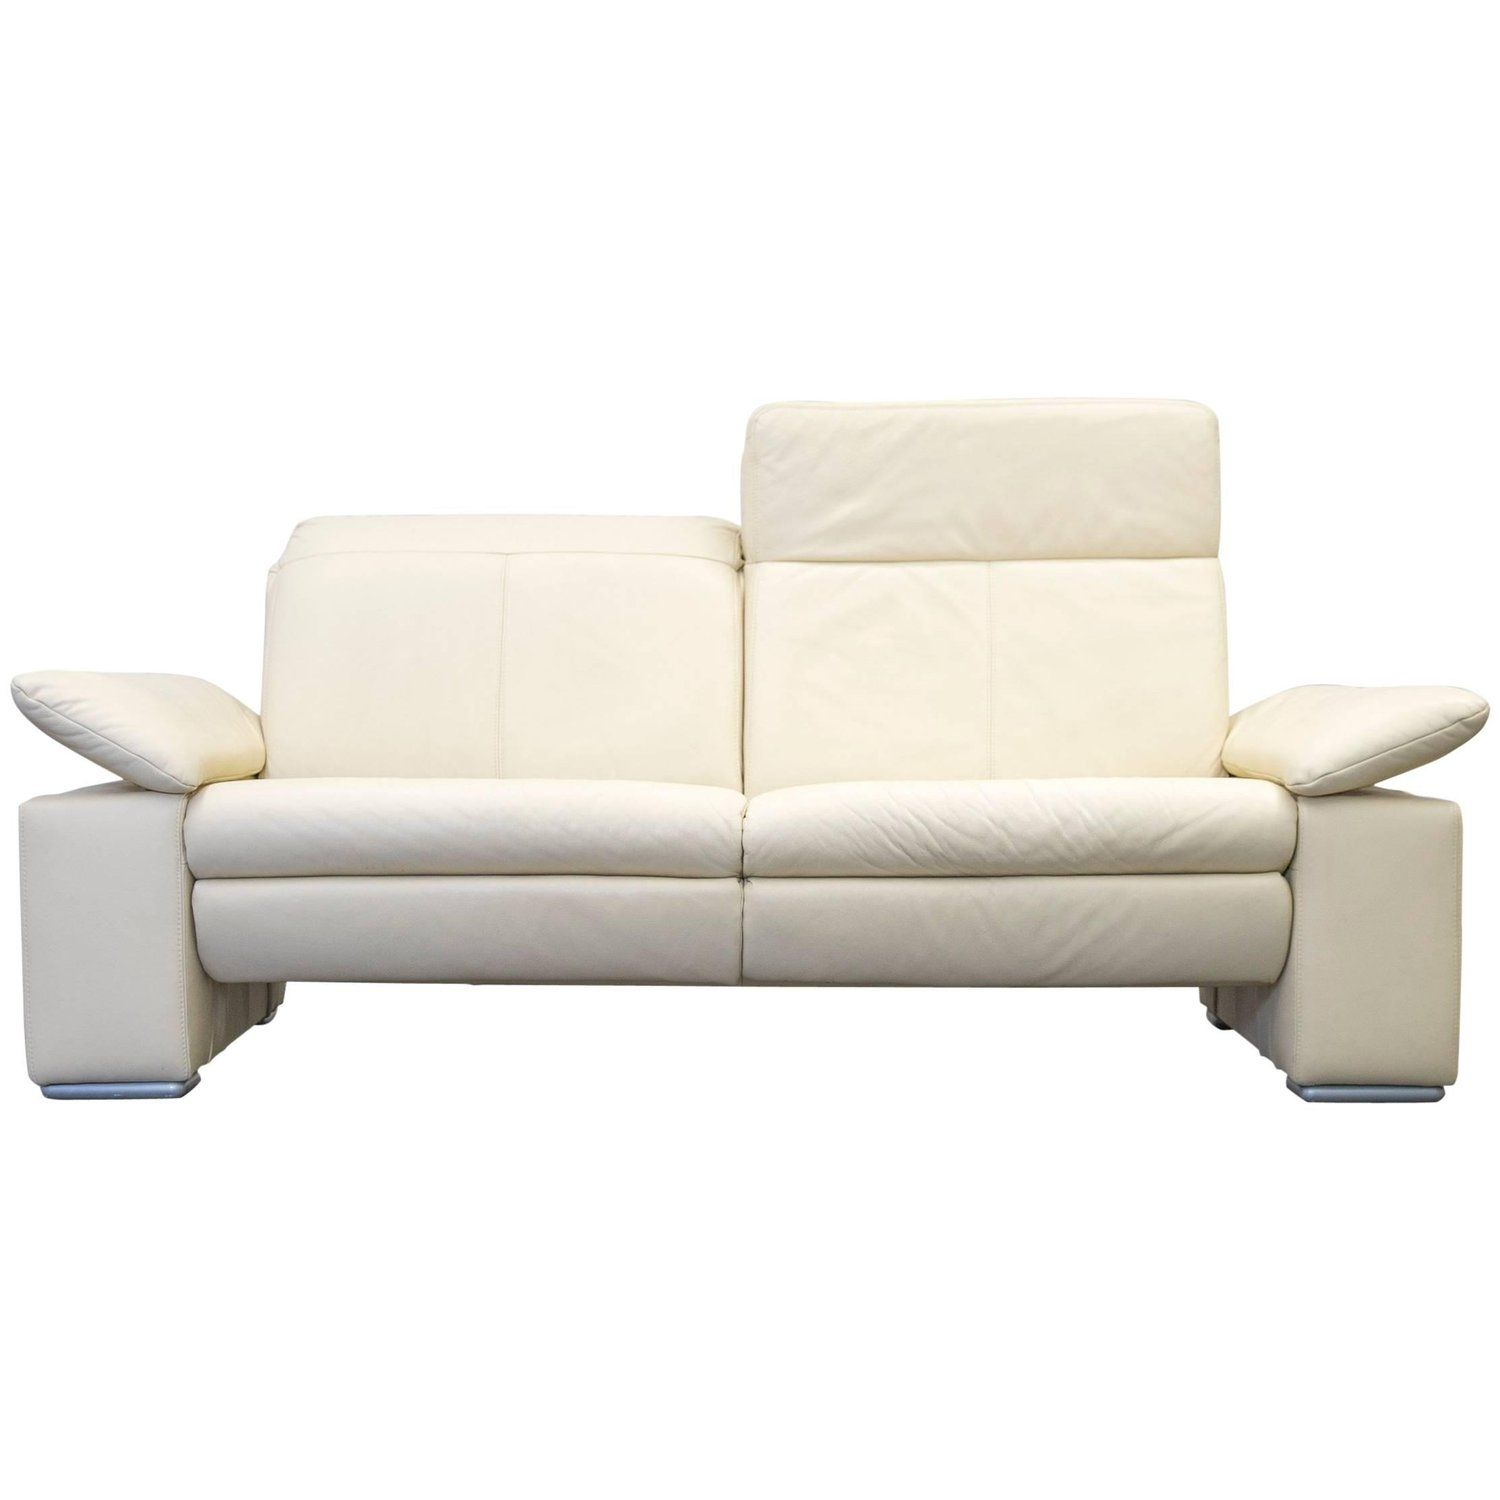 Musterring designer sofa leather beige three seat couch modern